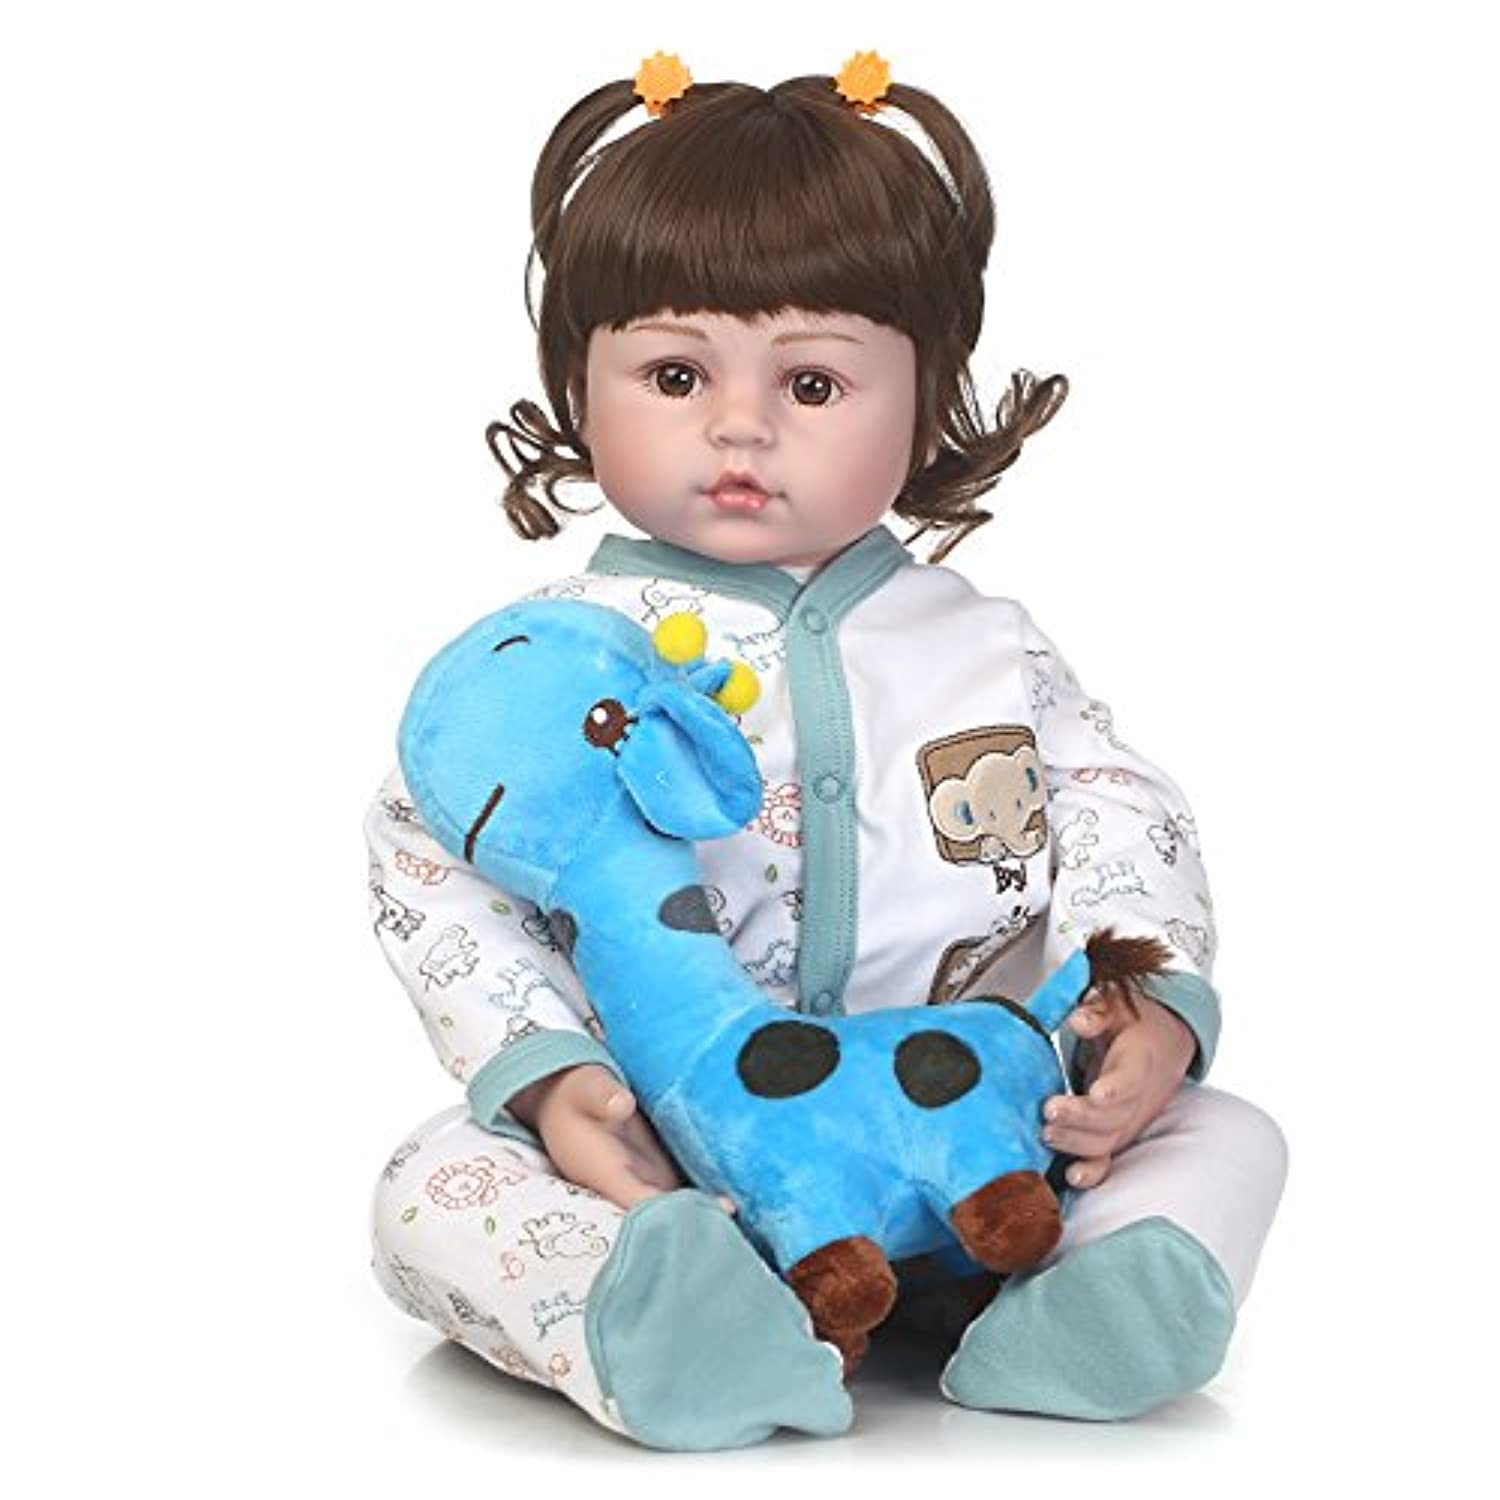 SanyDoll Rebornベビー人形ソフトSilicone 22インチ55 cm磁気Lovely Lifelike Cute Lovely Baby b0763lpd1 K